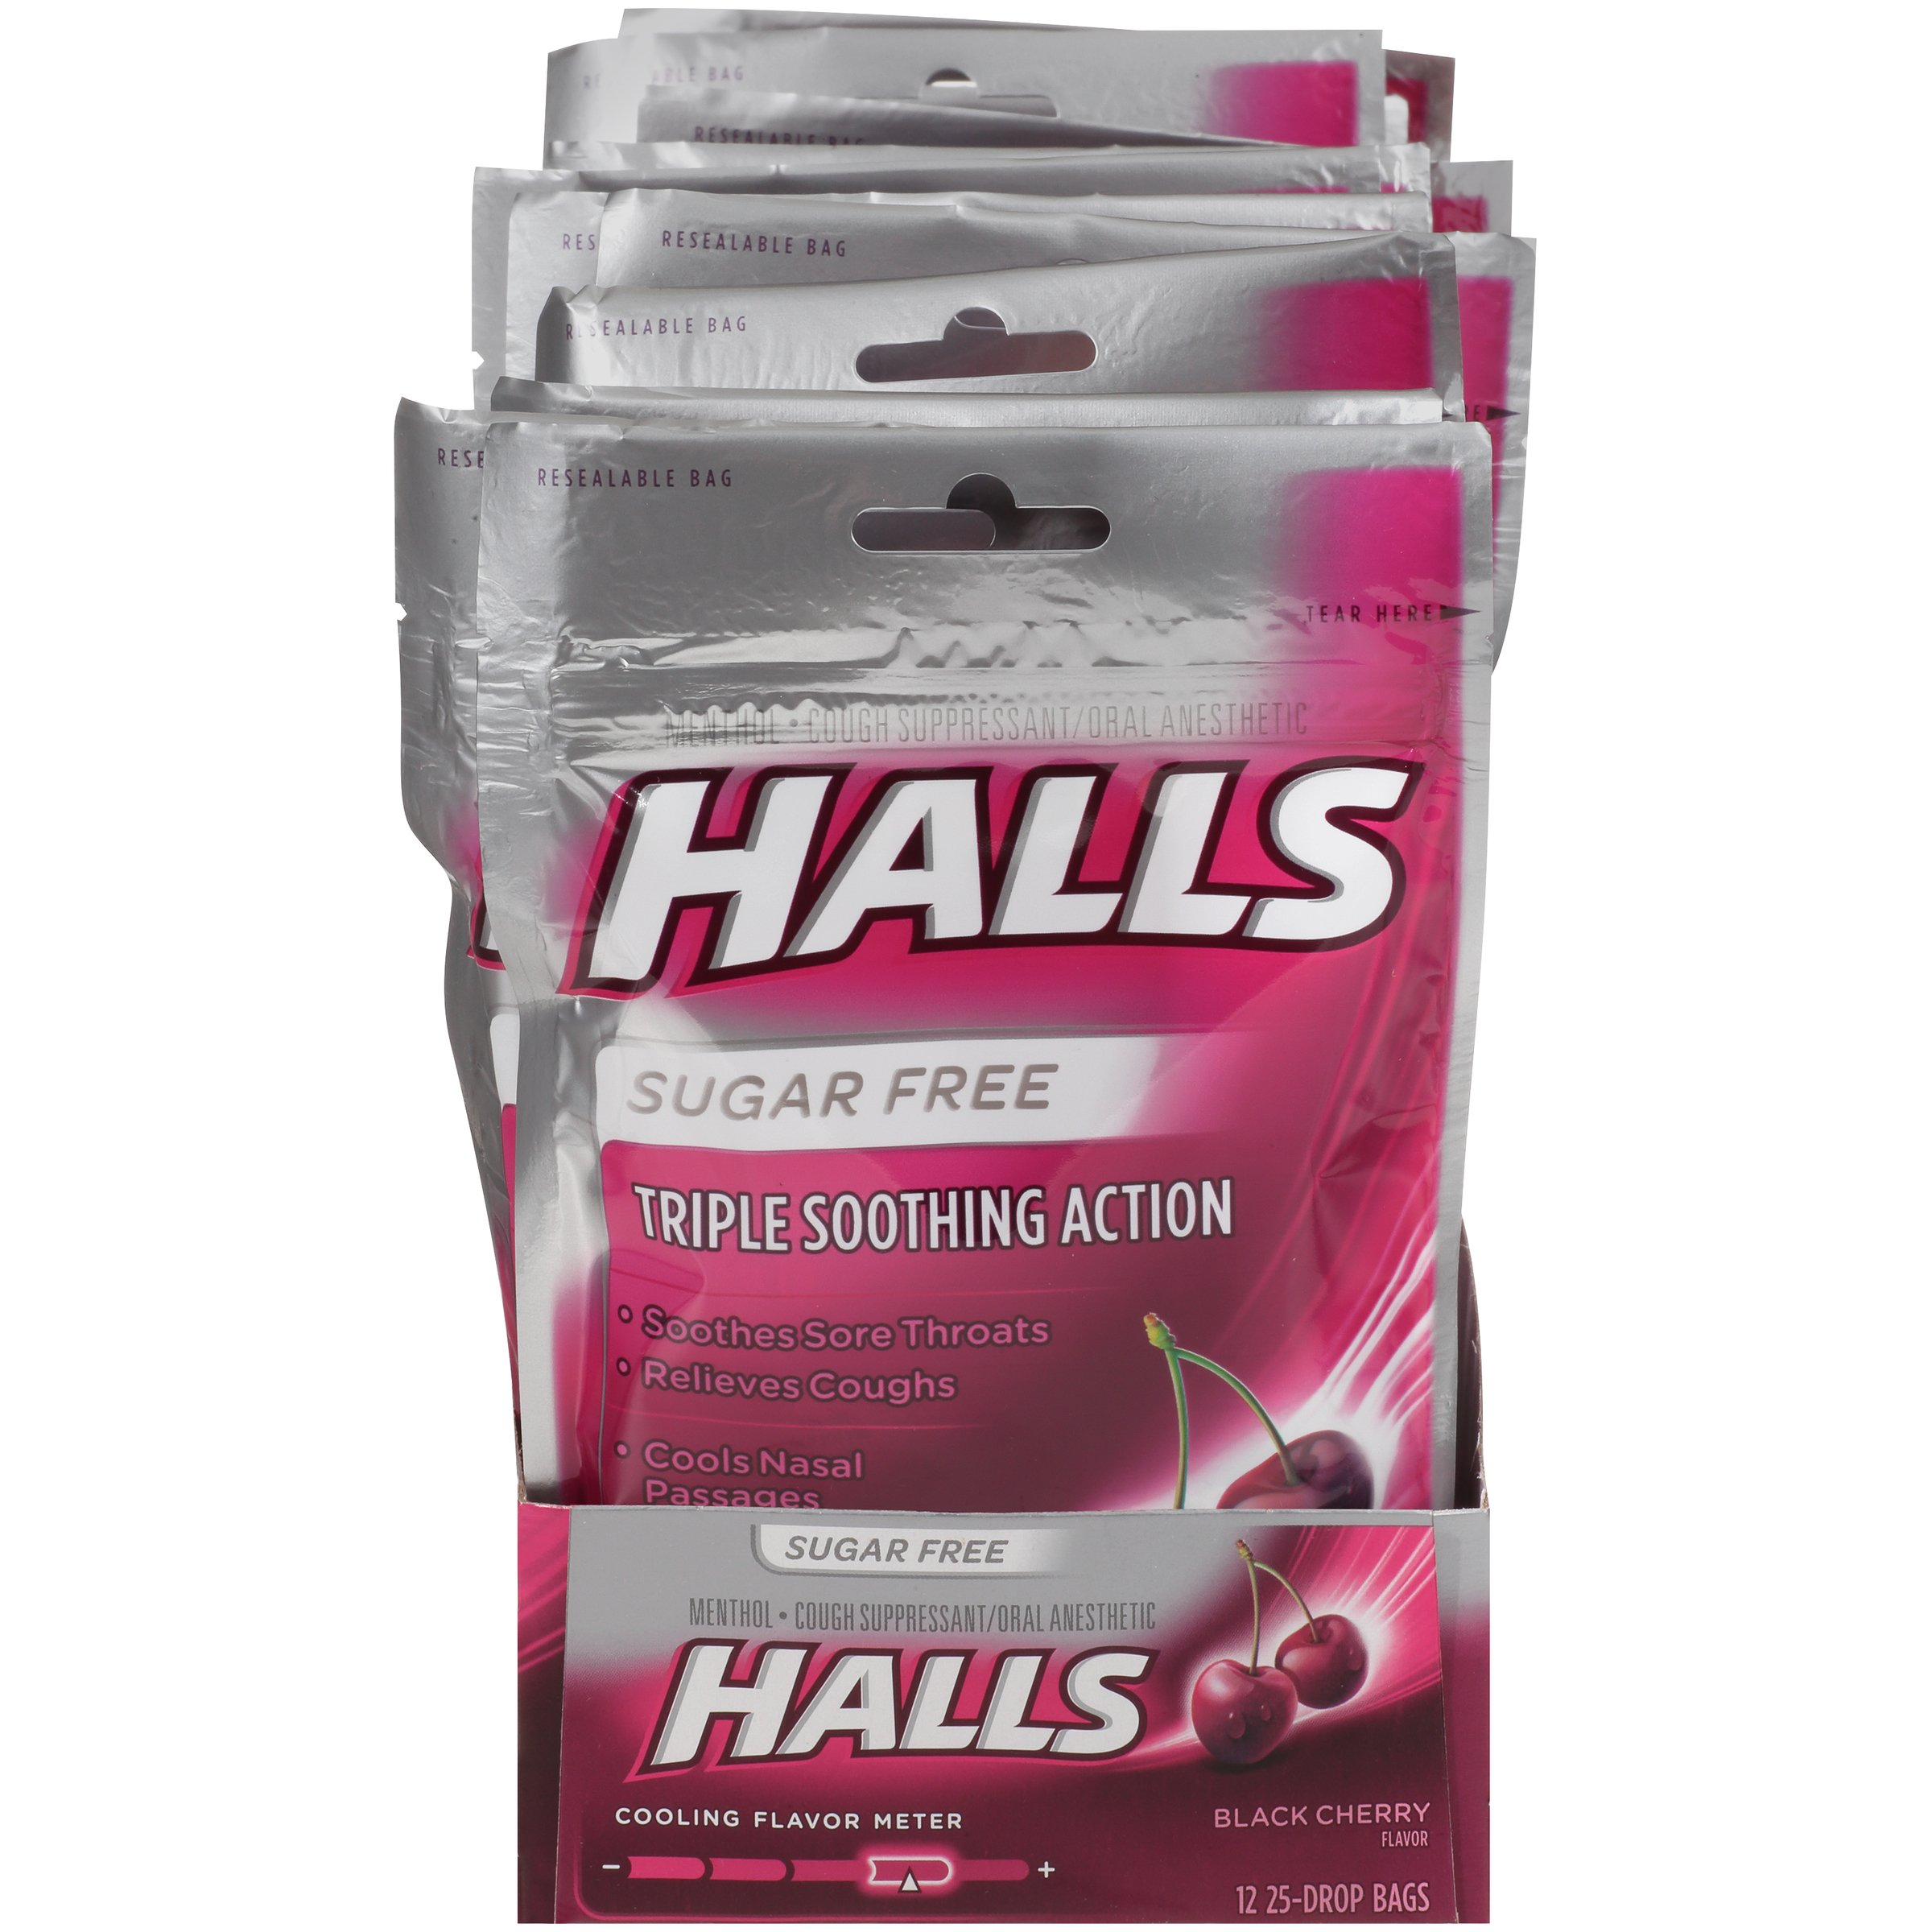 Halls Black Cherry Sugar Free Cough Drops - with Menthol - 300 Drops (12 bags of 25 drops)